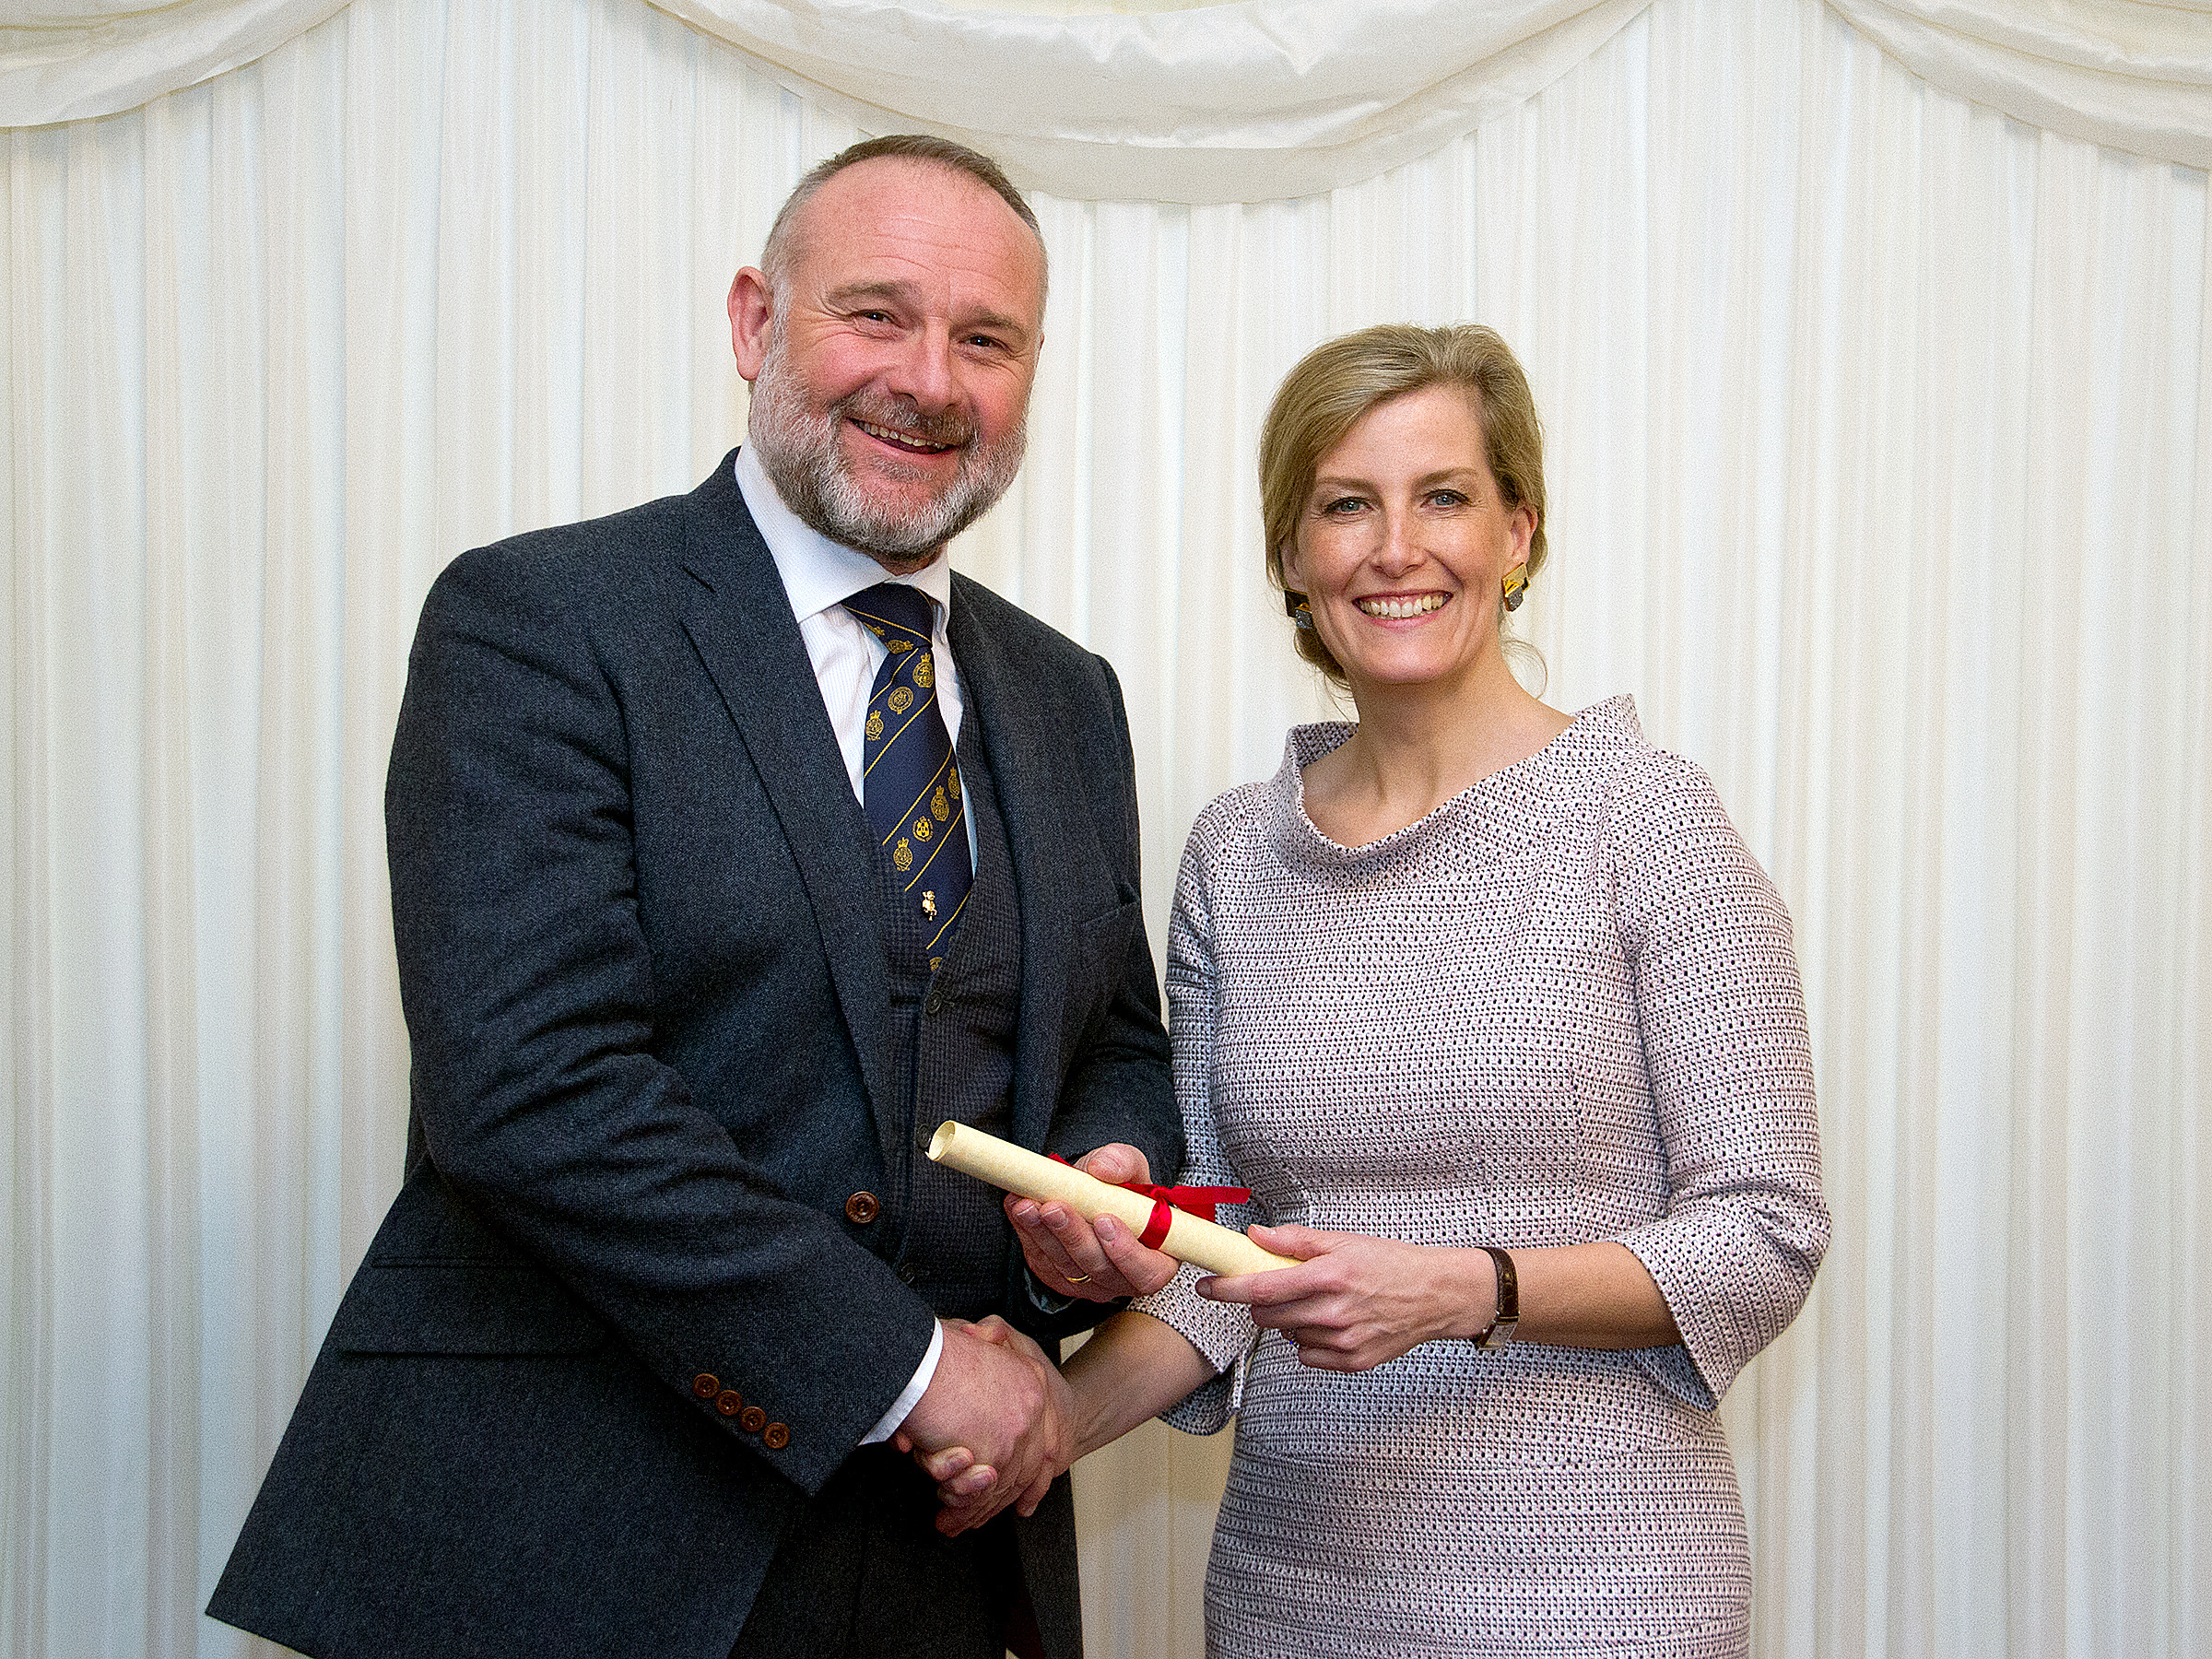 Sean Sparling, ARAgS, receiving his award from HRH the Countess of Wessex